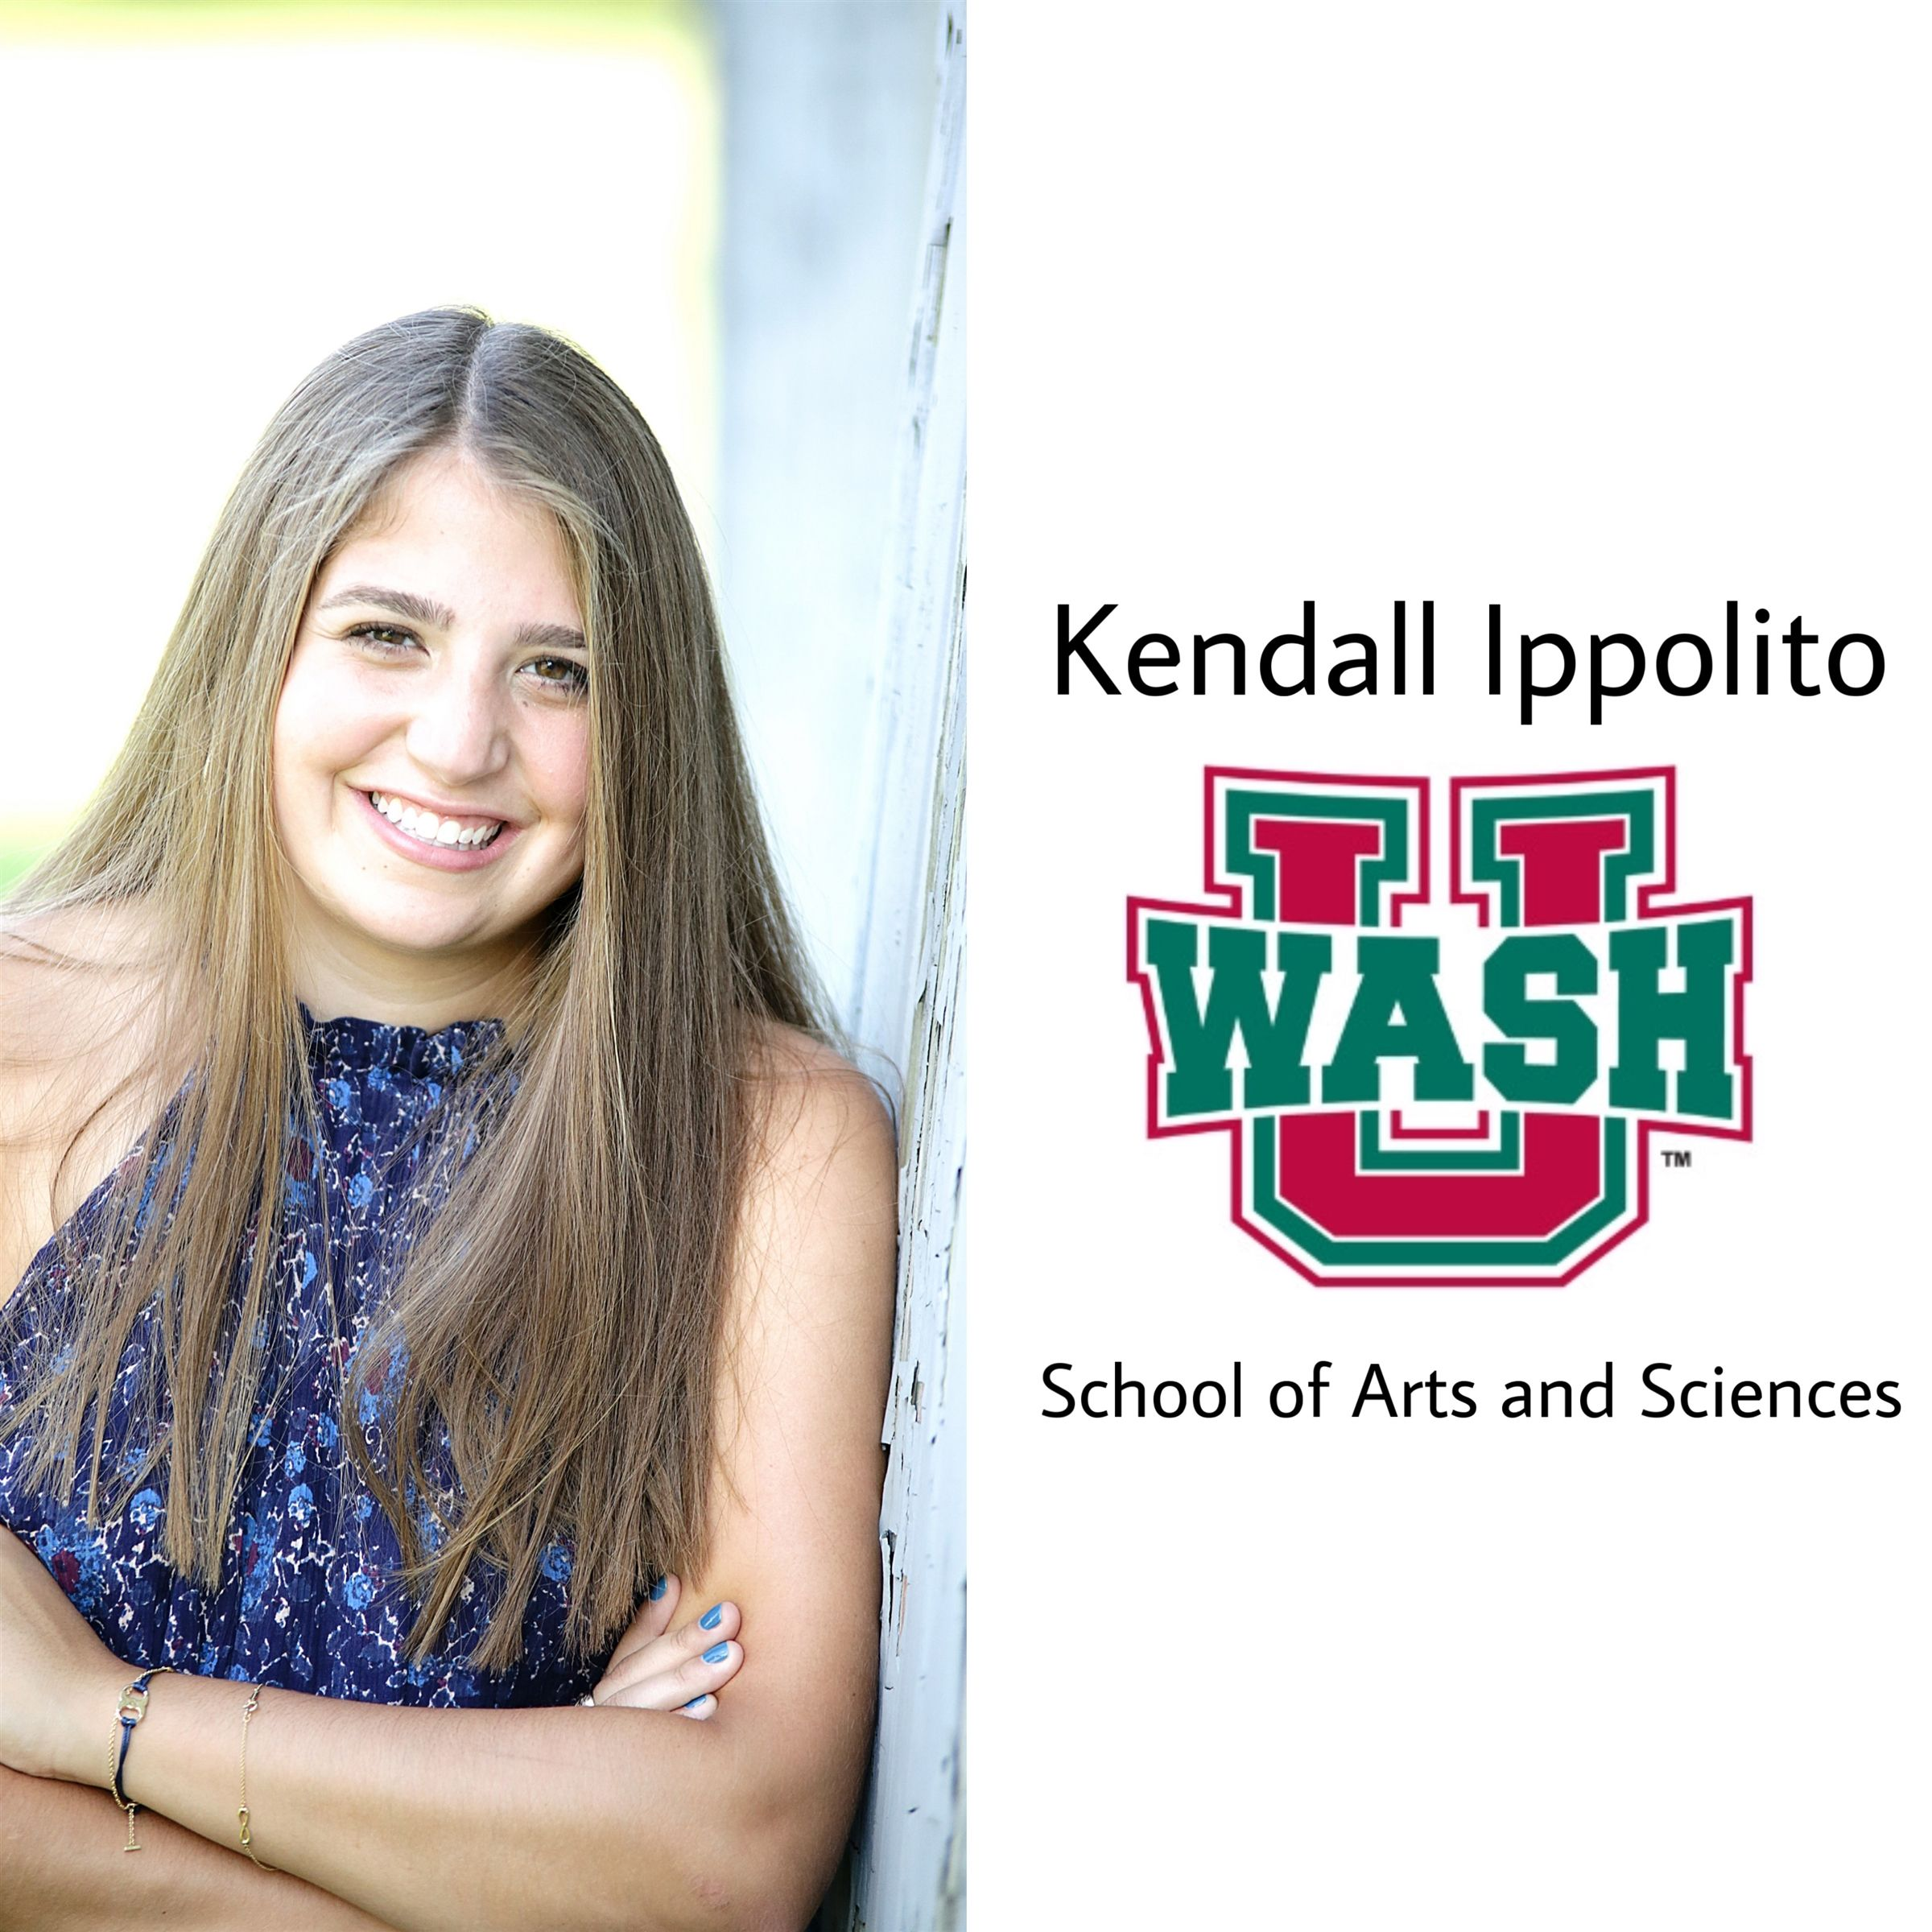 Kendall to Washington University!!! So proud! Congratulations and go bears!!